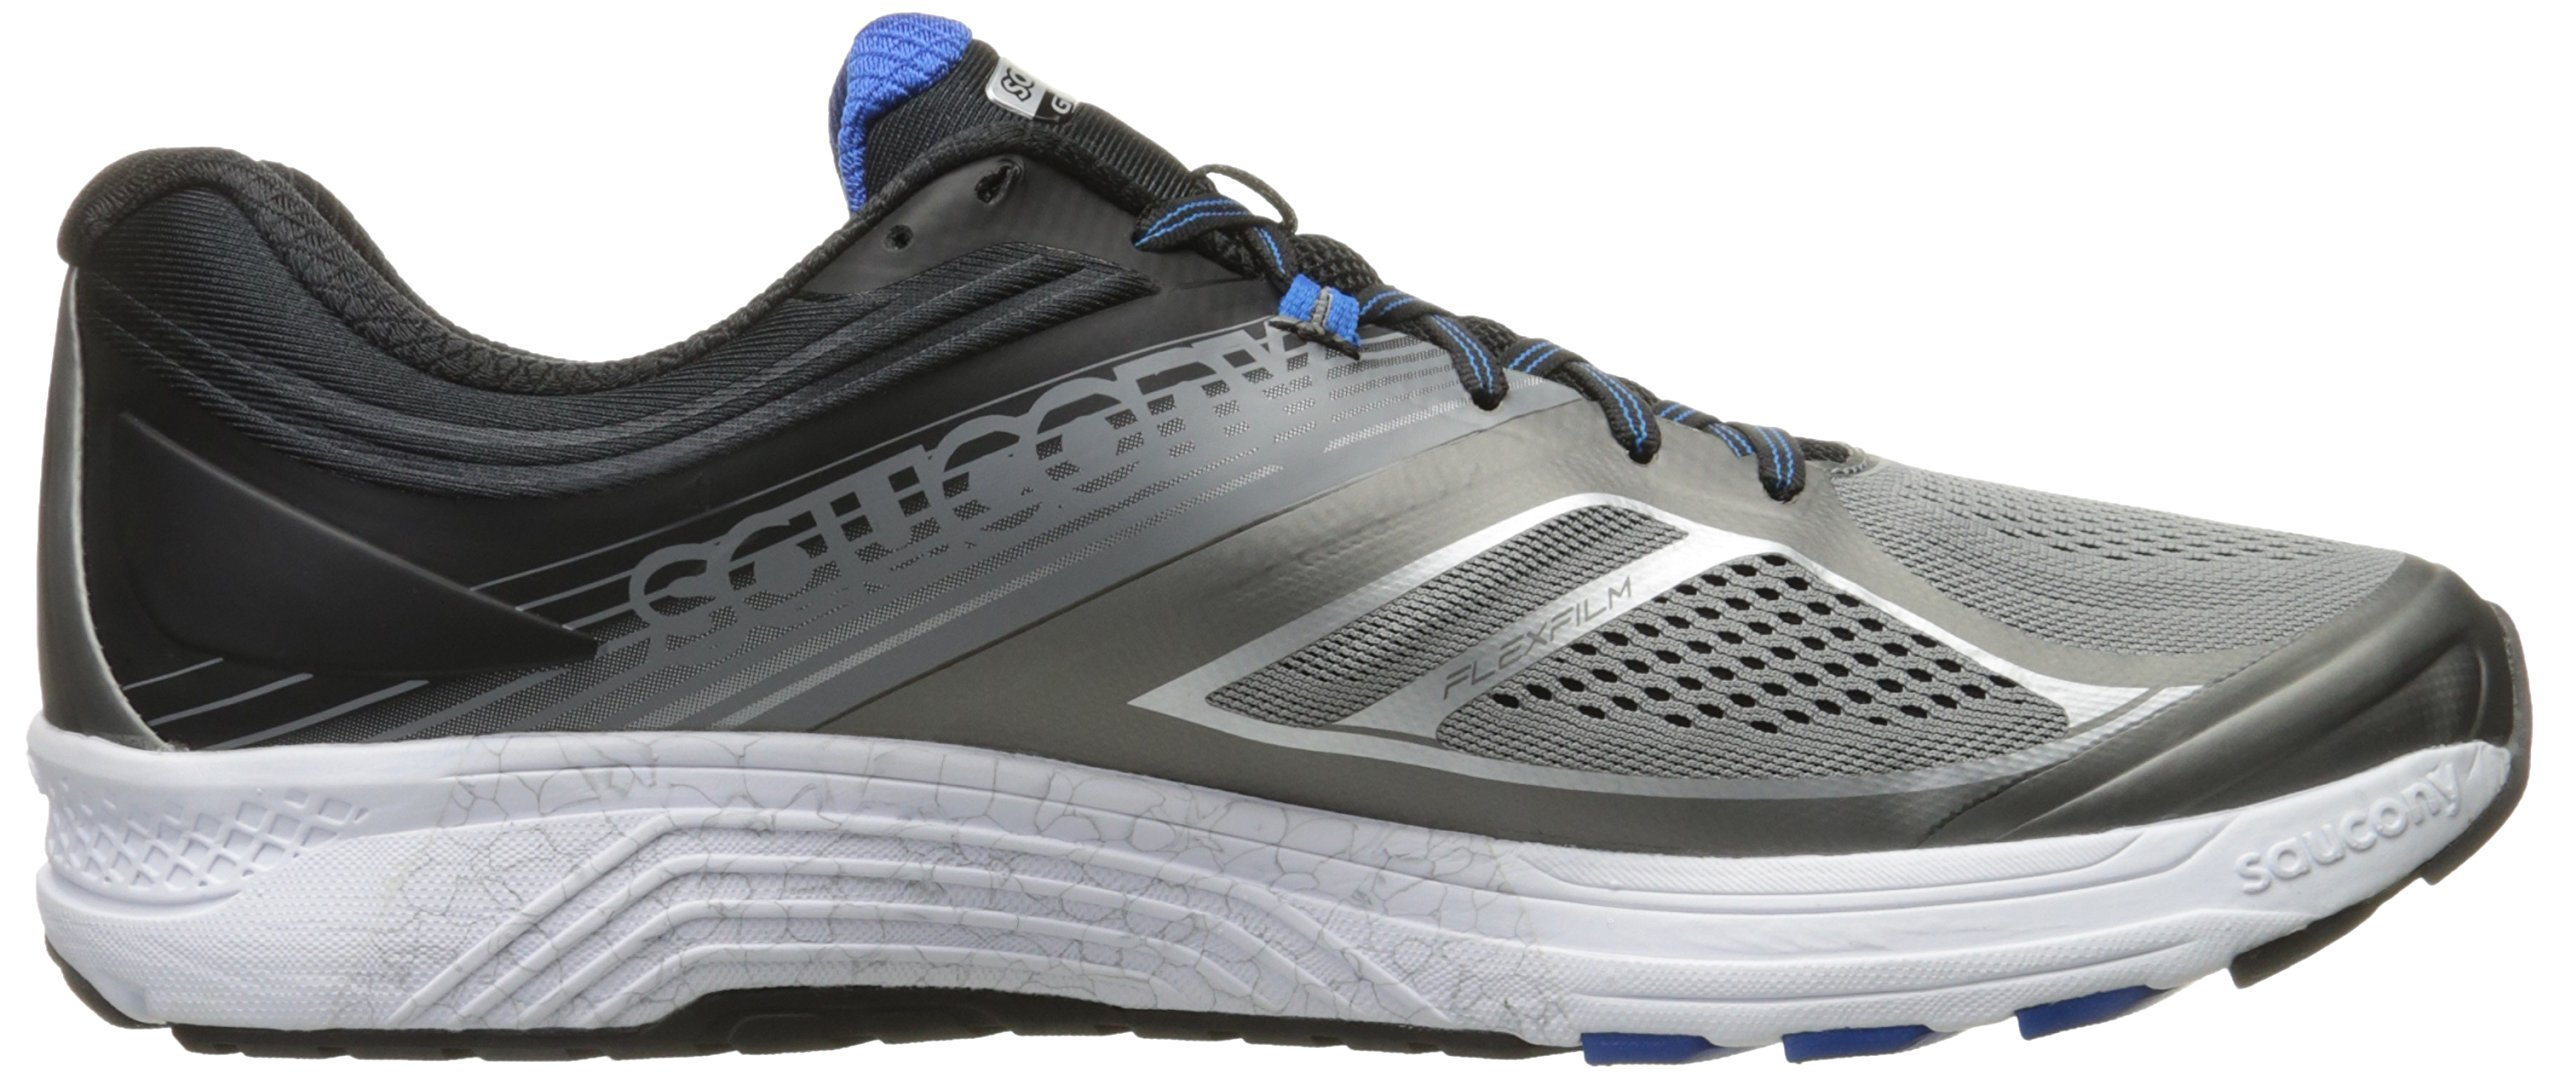 Saucony Men's Guide 10 Running Shoes, Grey Black, 14 D(M) US by Saucony (Image #8)